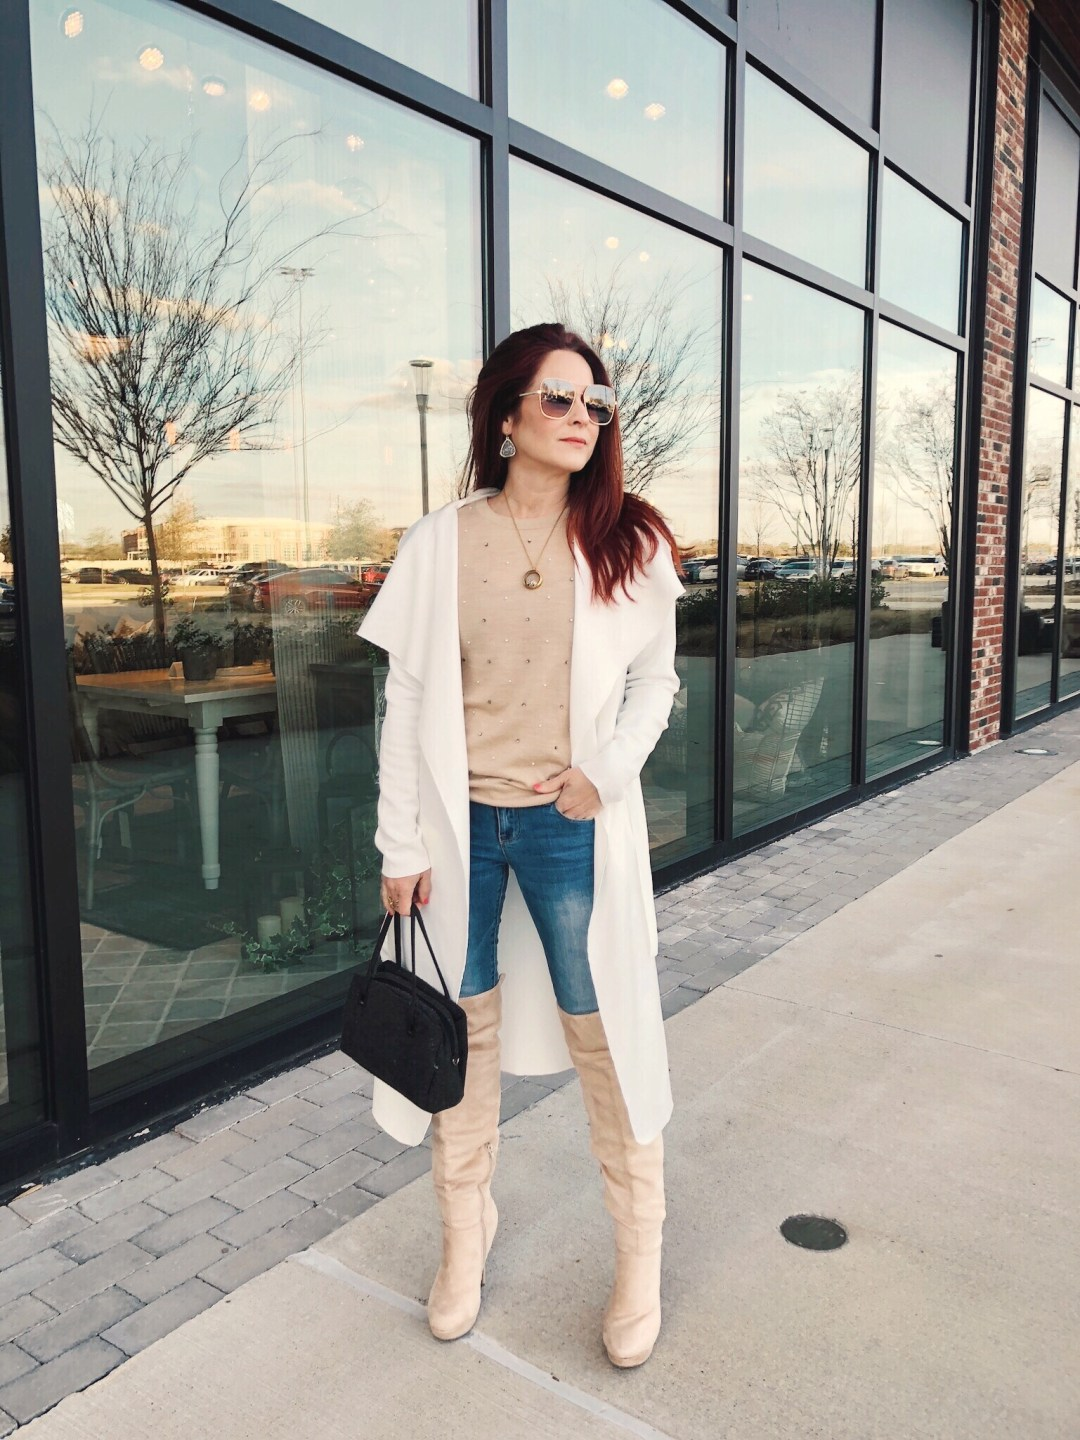 duster wrap coats outfits, cream over the knee boot outfit inspiration, blush sweater outfits, quay sunglasses, chic outfit ideas